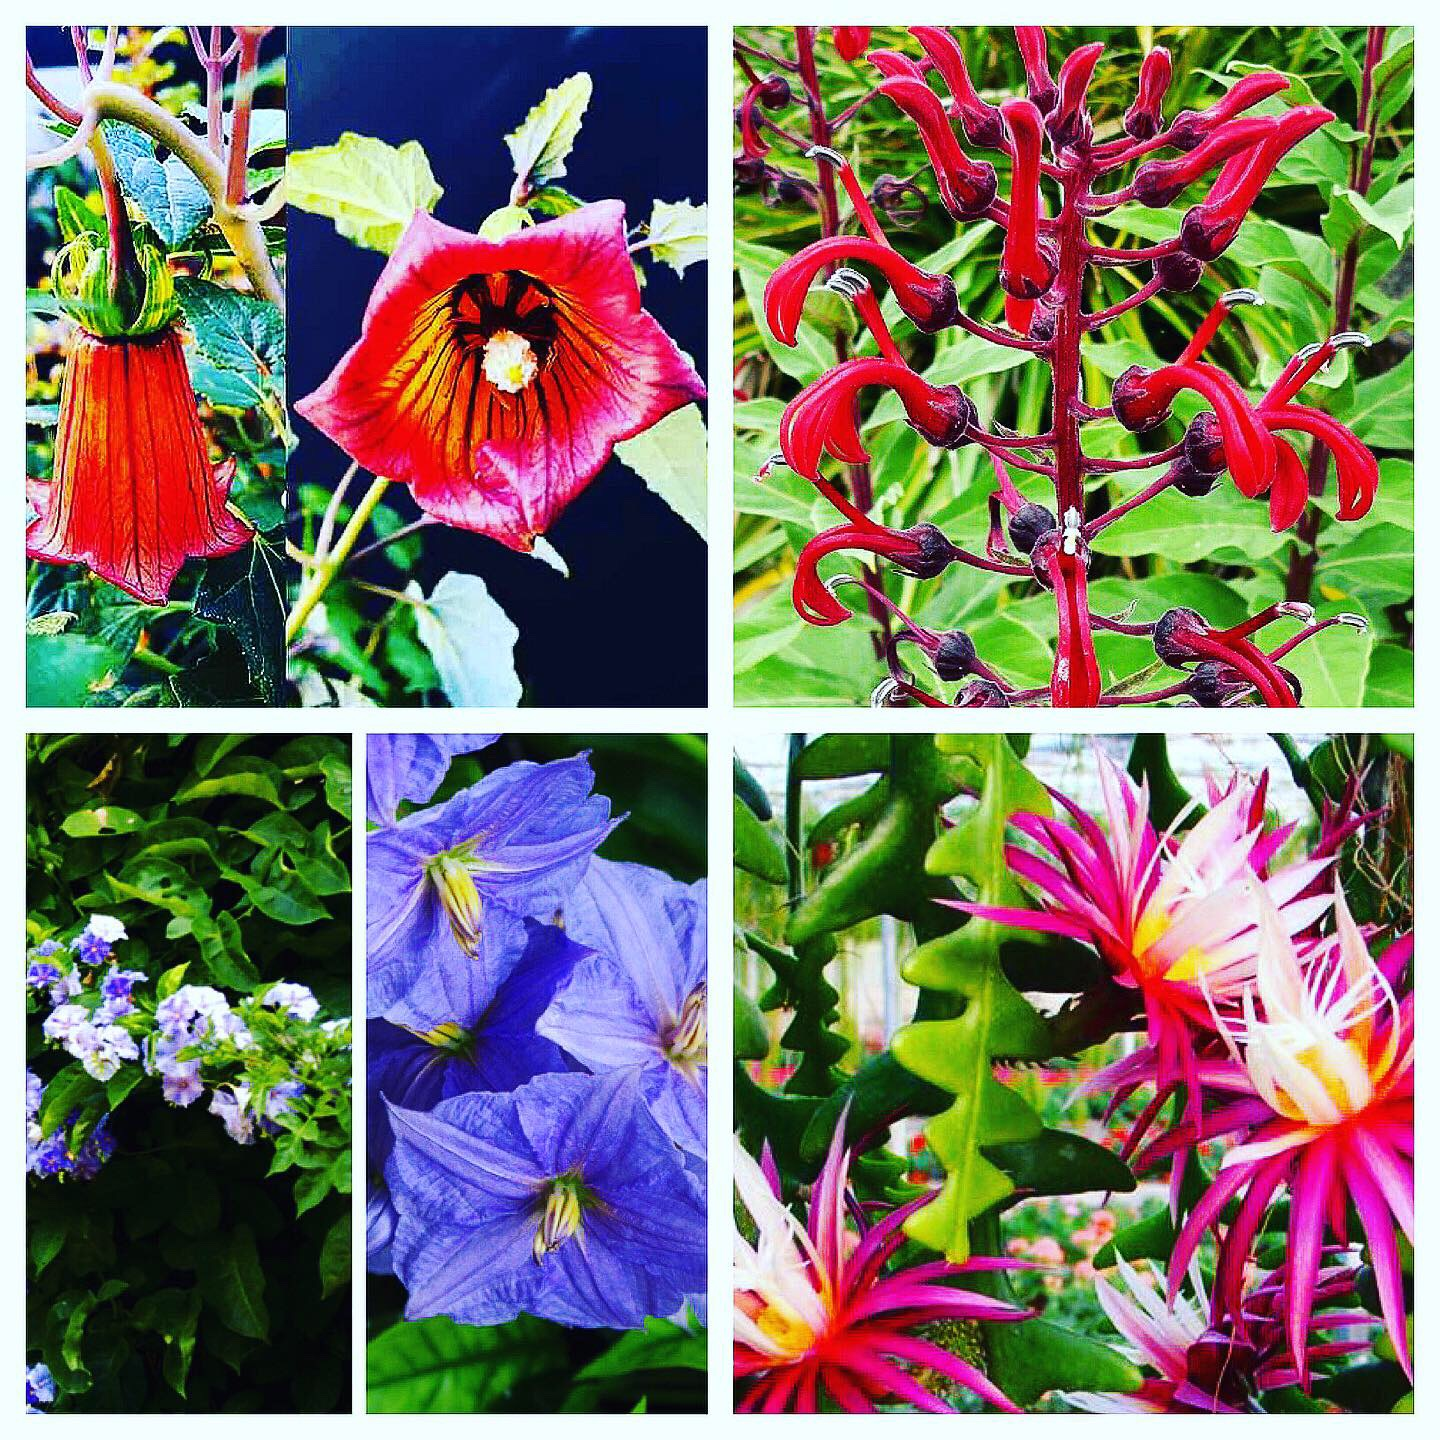 Clockwise from Top Left: Canarina canariensis 'Canary Bell Flower Vine', Lobelia tupa 'Devil's Tobacco, Selenicereus anthonyanus 'Fishbone Cactus' , and Solanum wendlandii 'Costa Rican Night Shade'